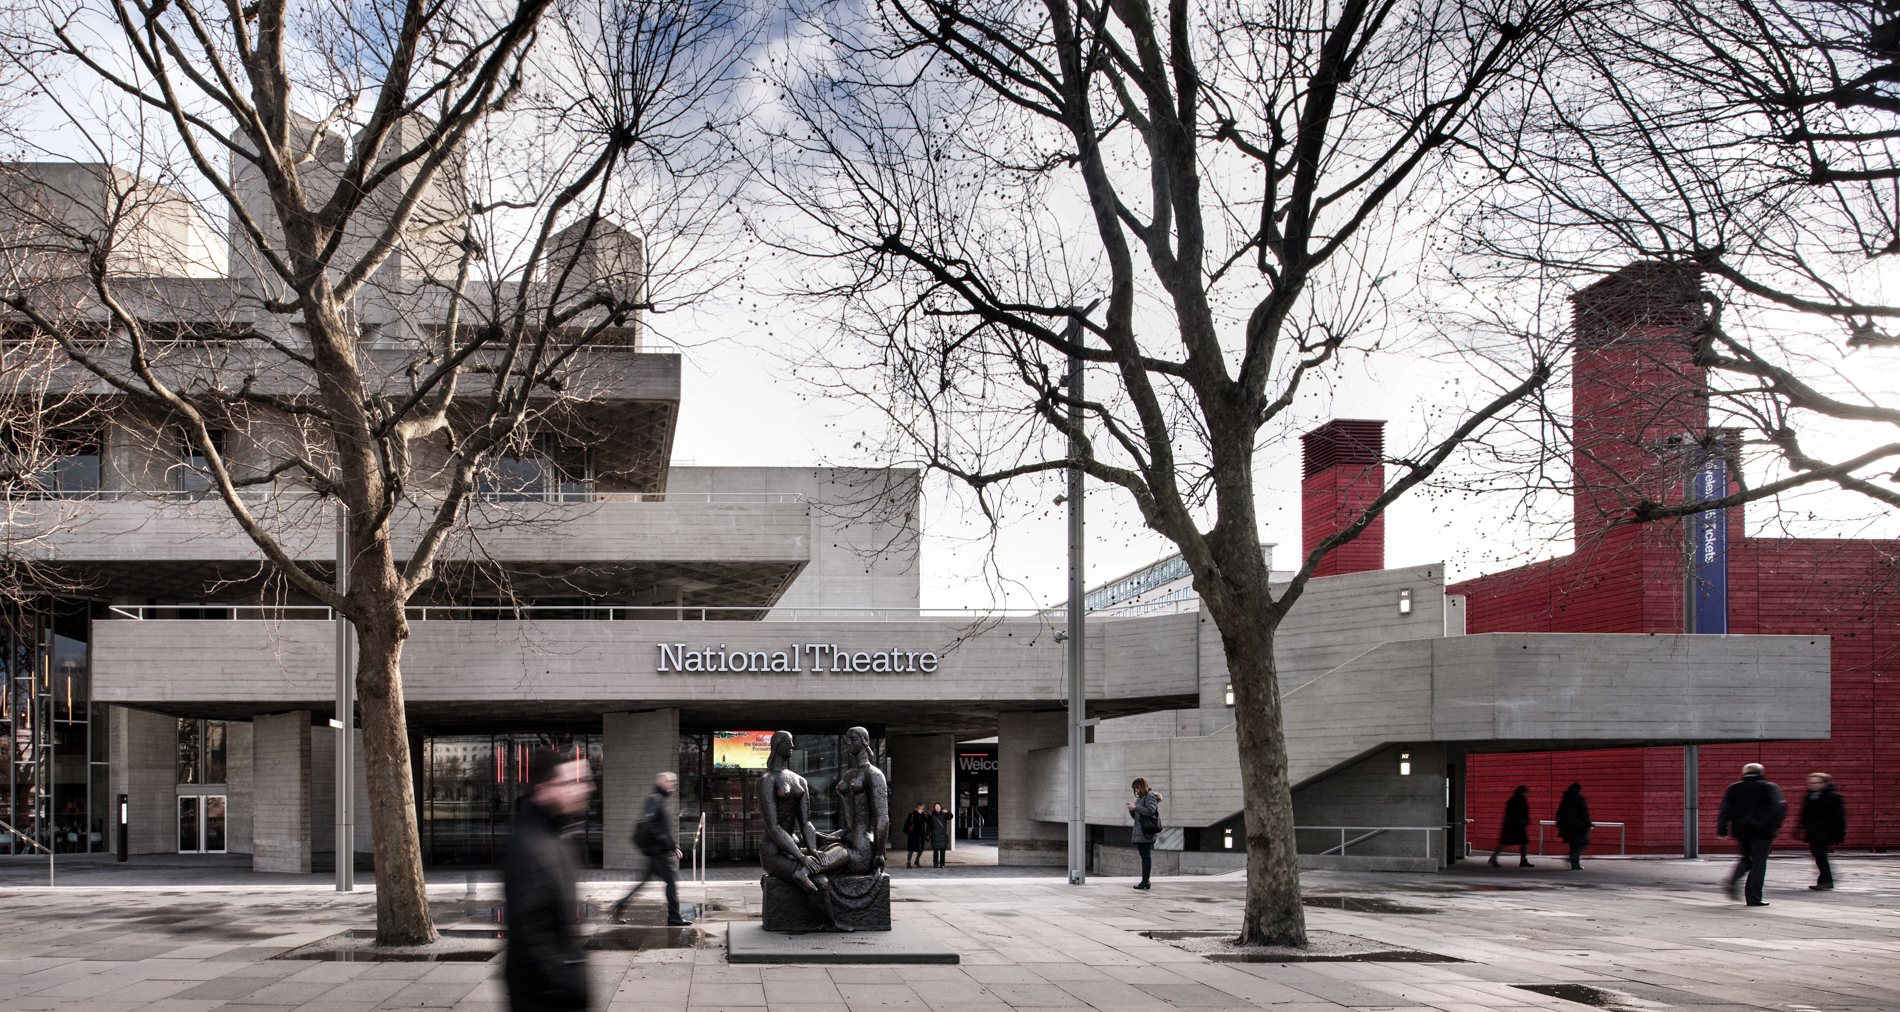 The National Theatre, by Philip Vile